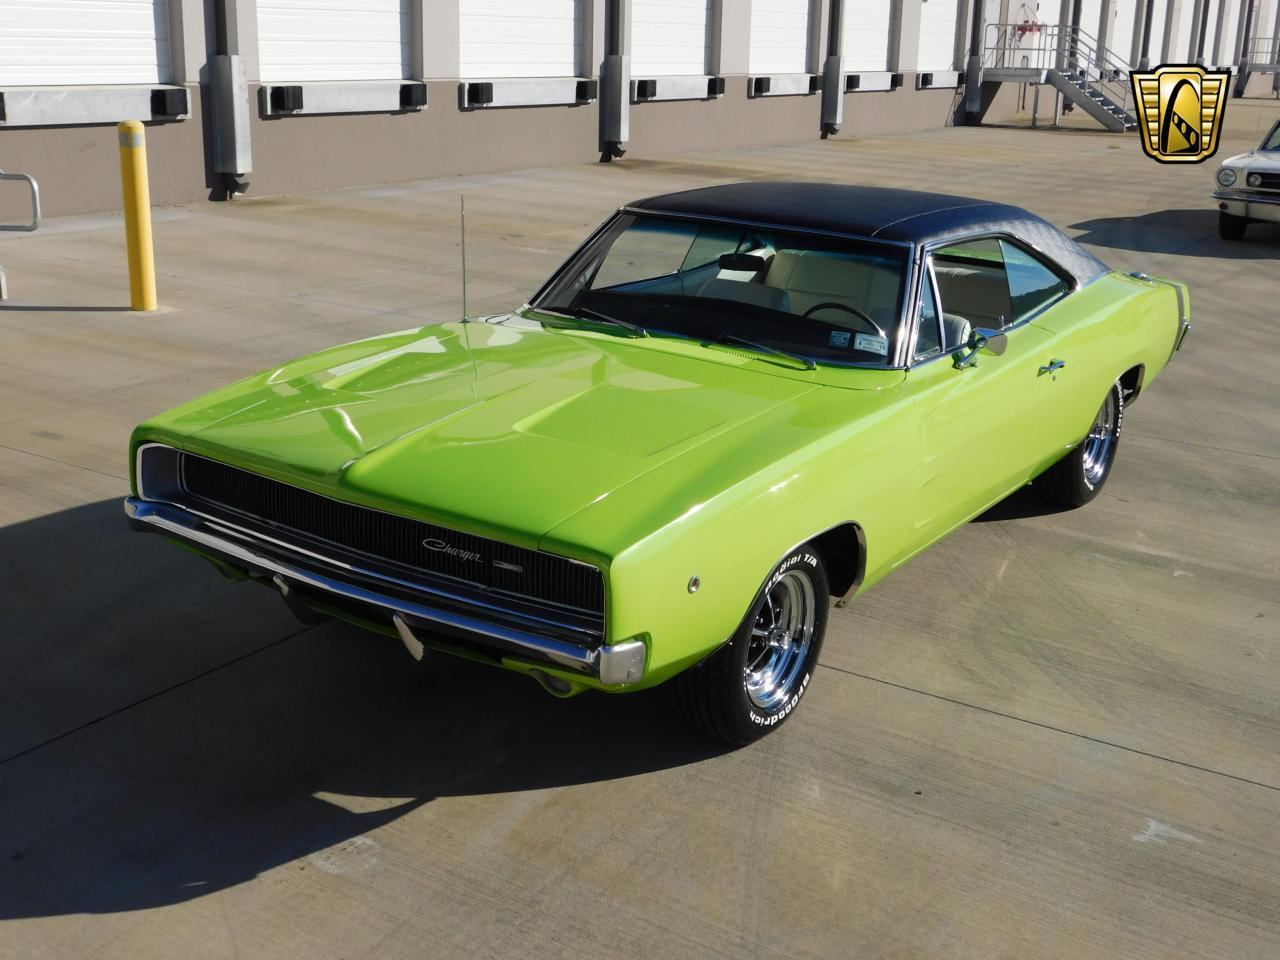 Large Picture of '68 Dodge Charger located in Alpharetta Georgia - $39,995.00 - MFU6